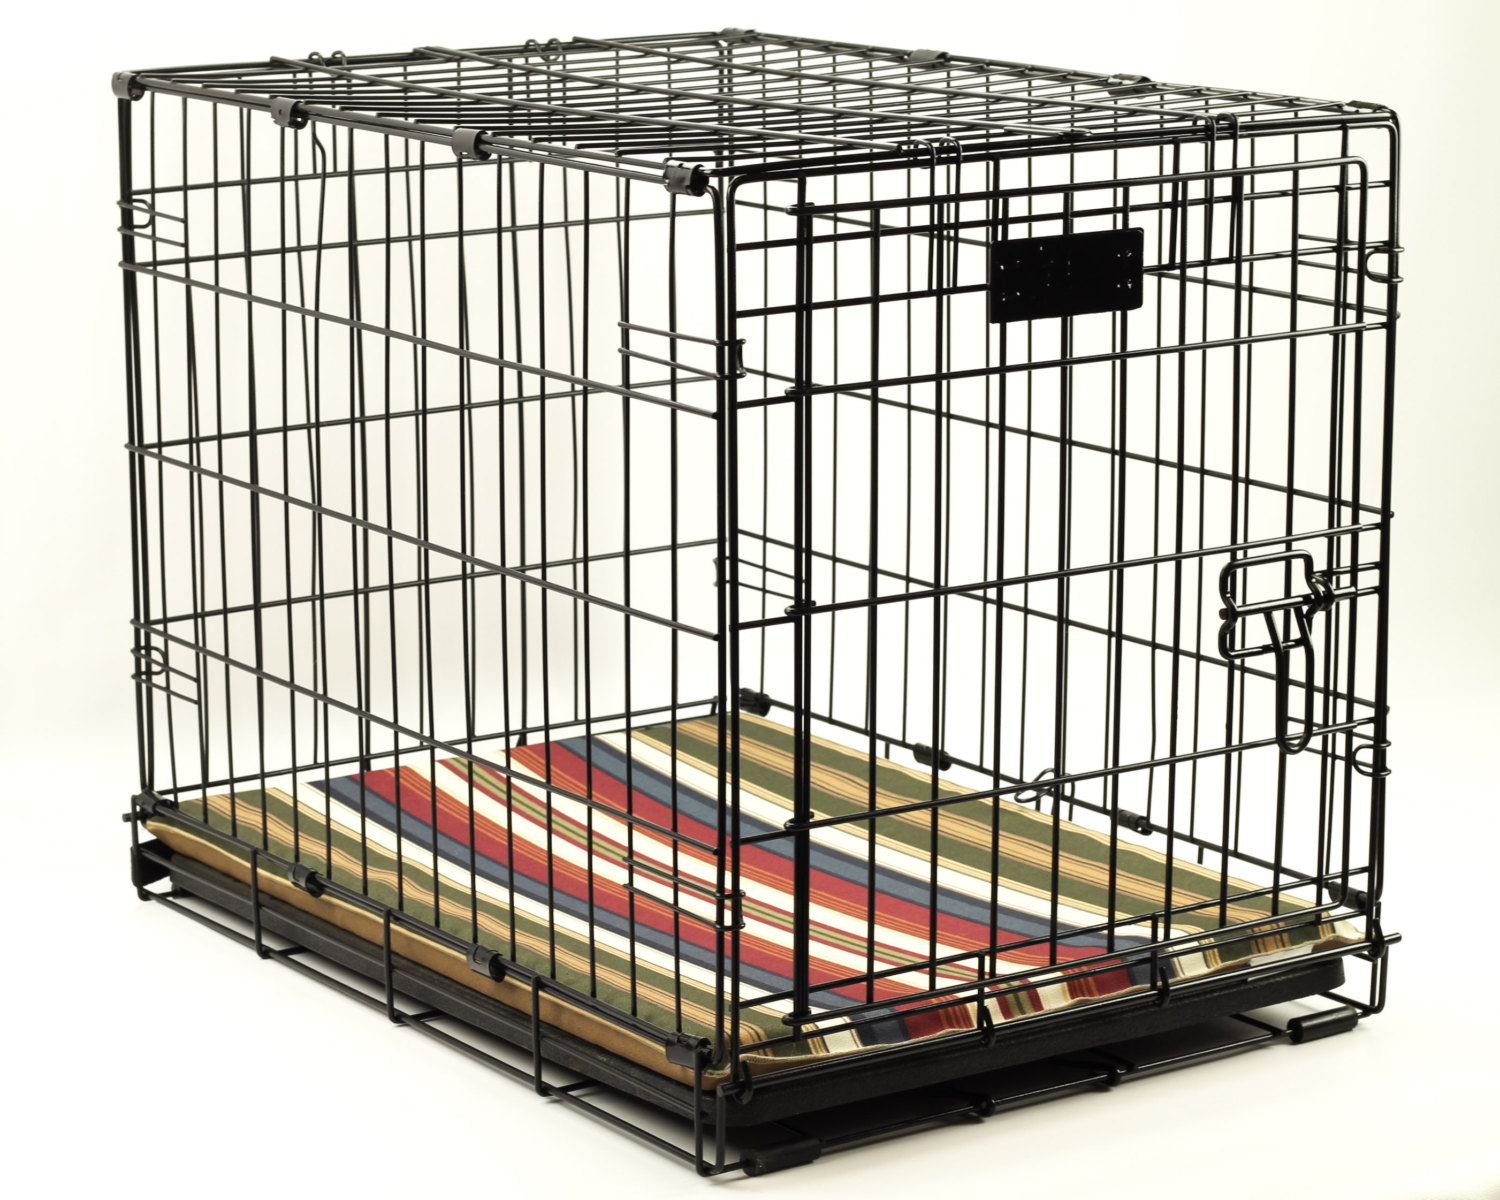 Cage clipart pet cage, Cage pet cage Transparent FREE for.